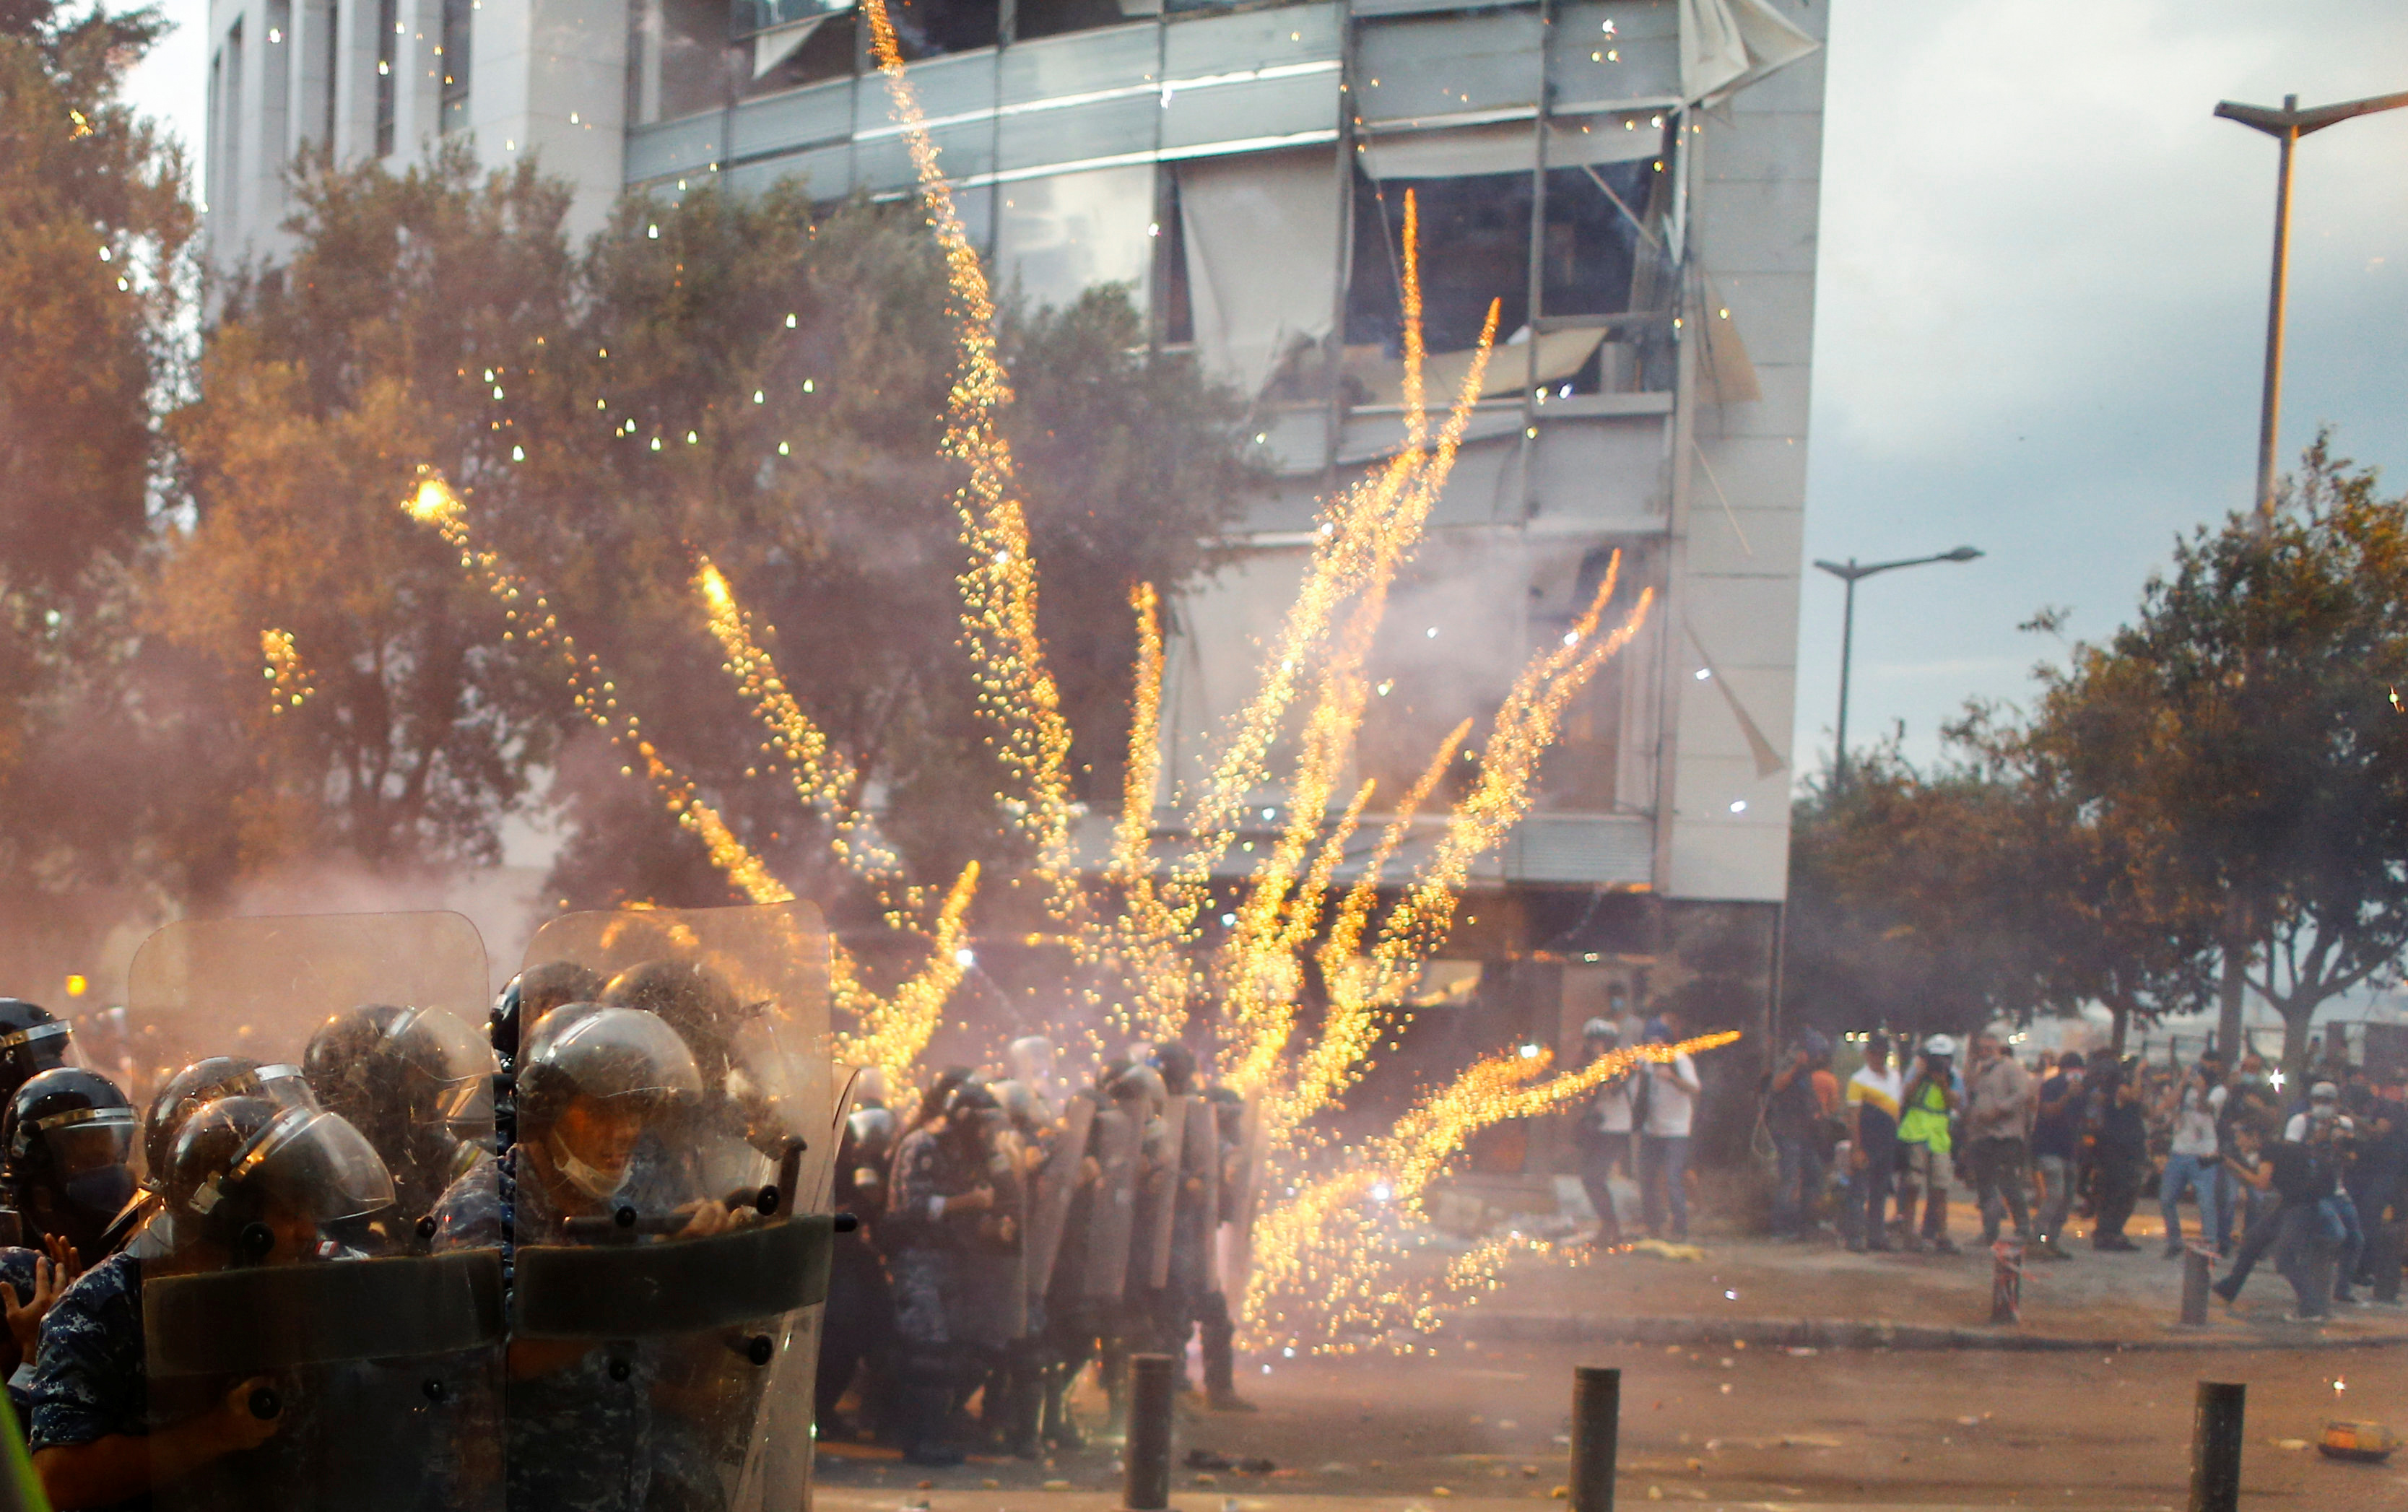 Fireworks are set off in front of police officers during anti-government protests that have been ignited by a massive explosion…